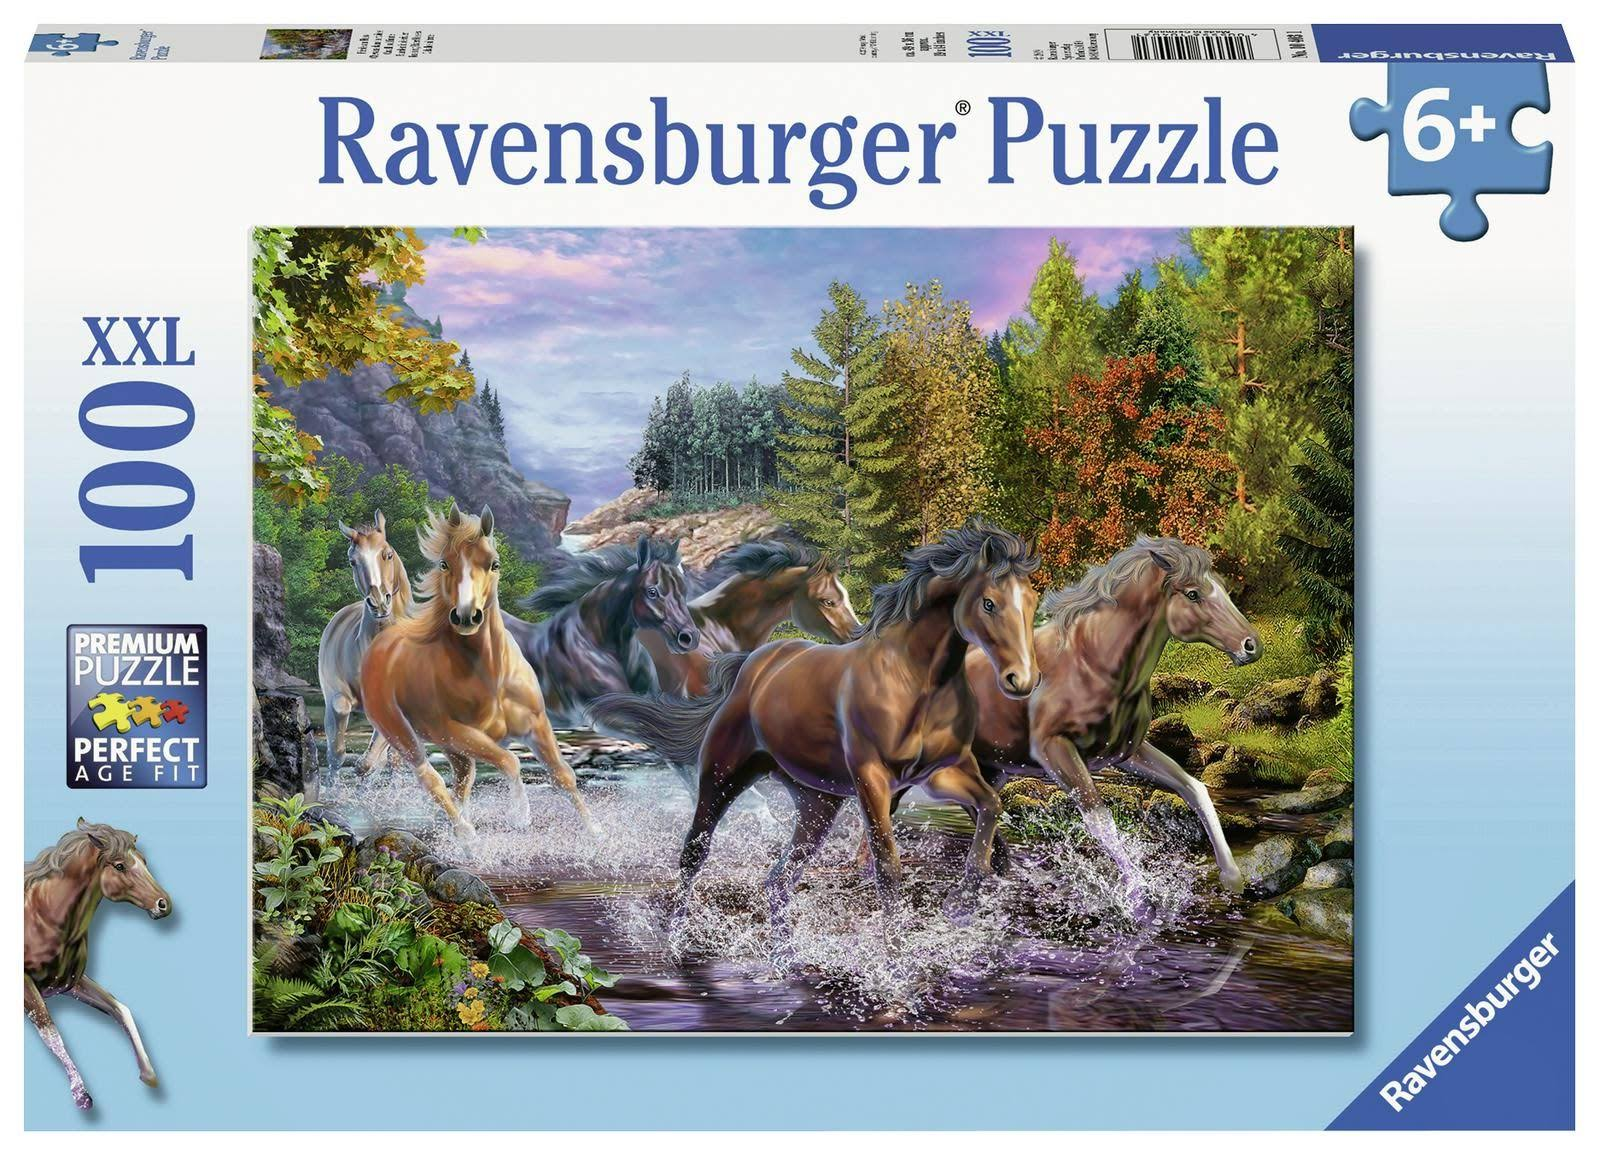 Ravensburger Rushing River Horses Jigsaw Puzzle - 100pcs, XX-Large